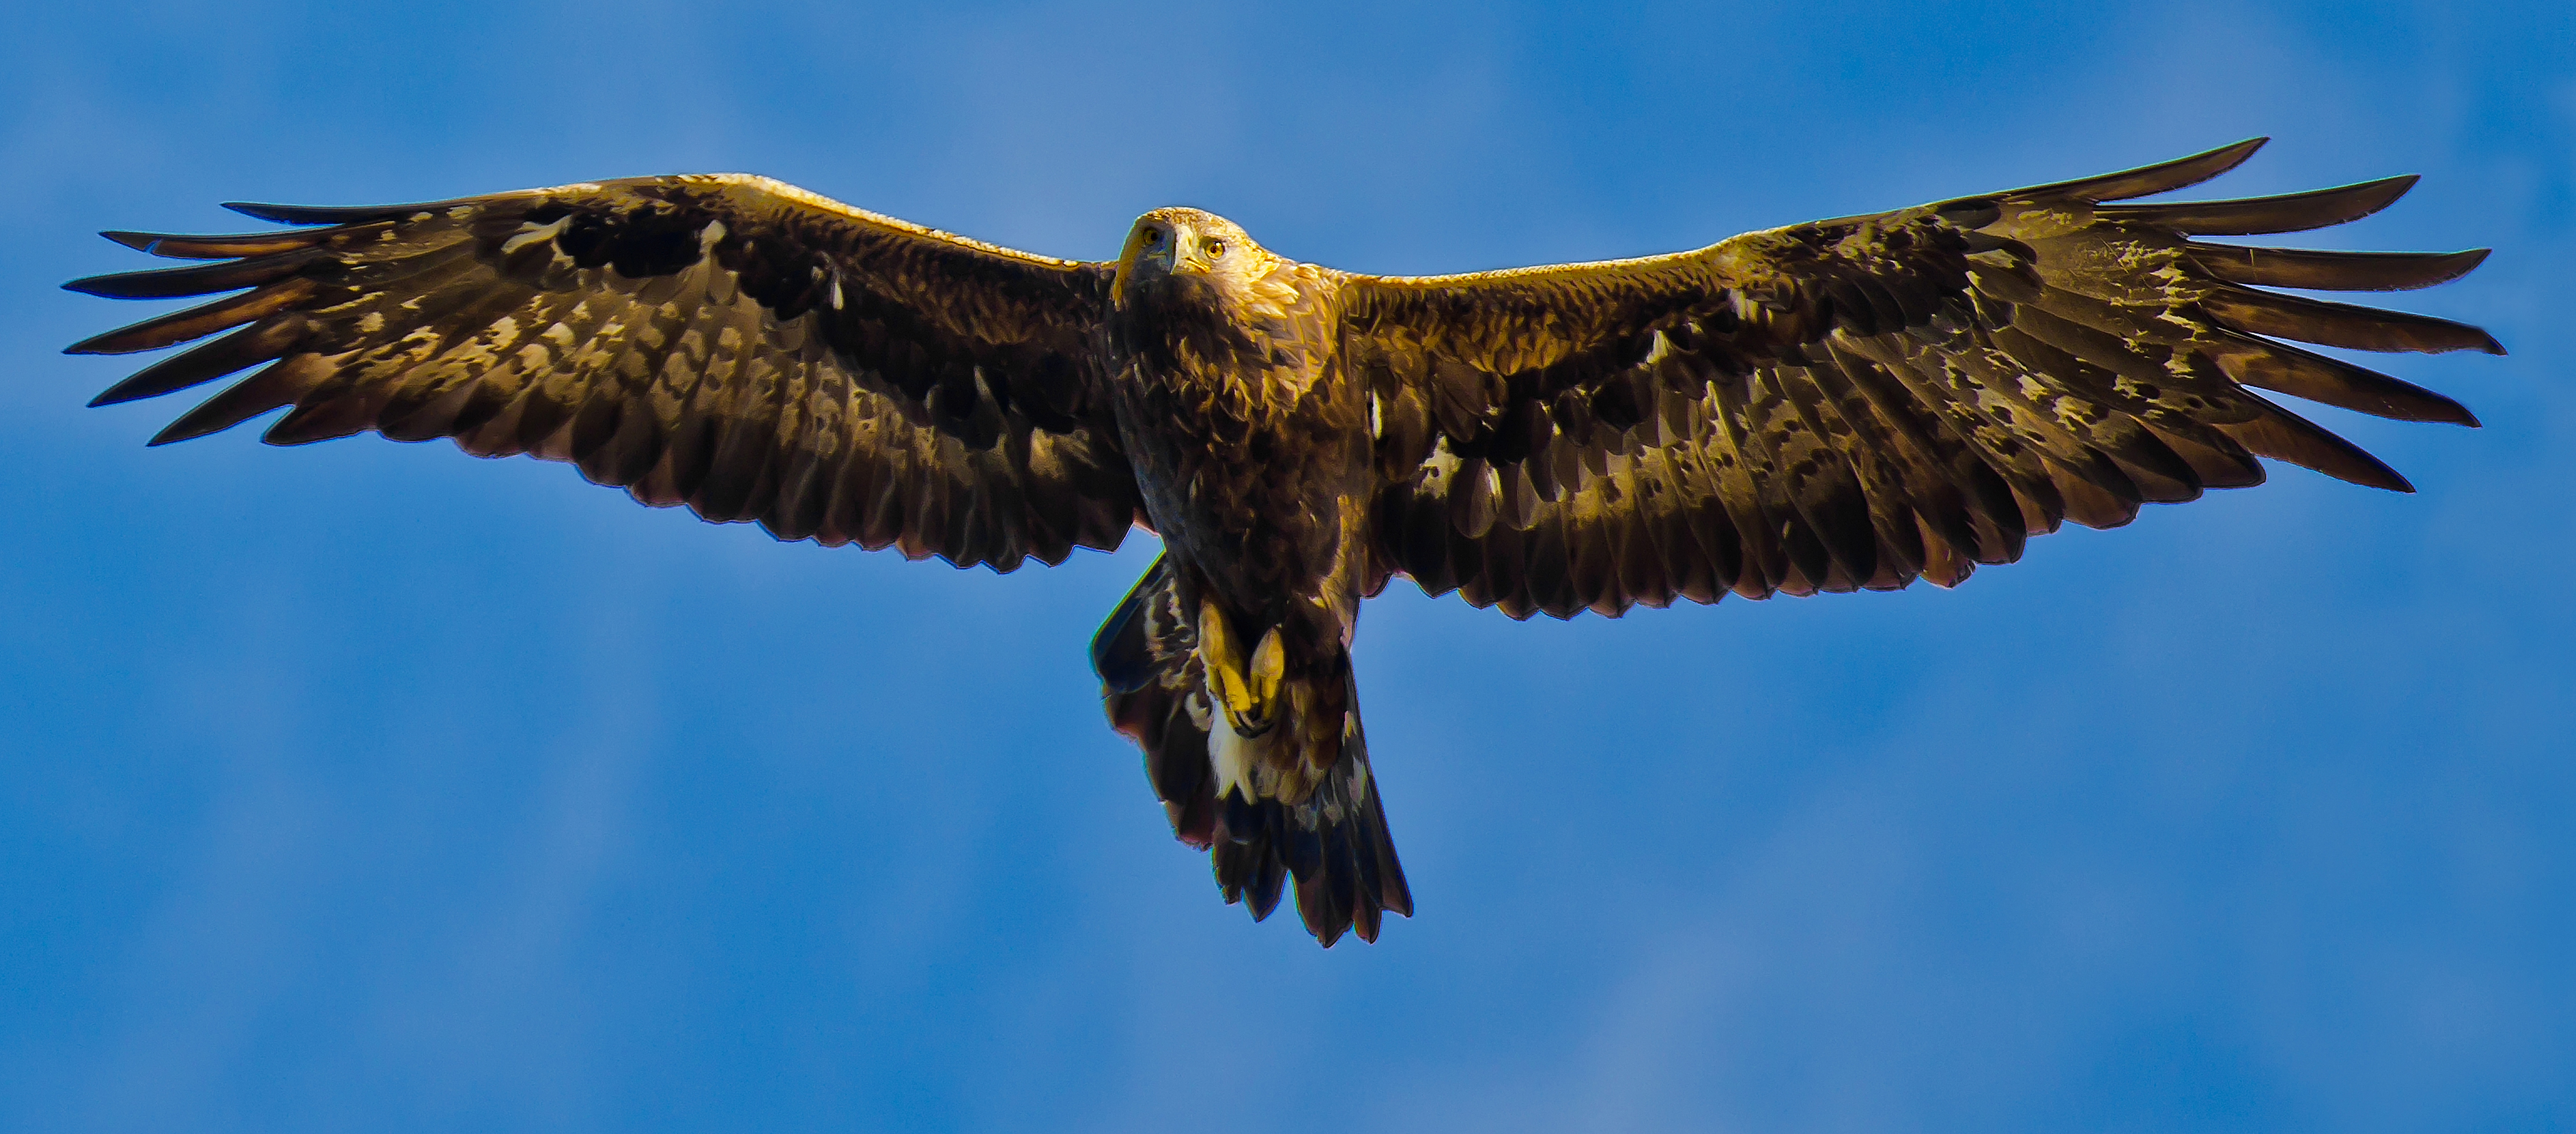 Photo by: Ib Dyhr. Adult golden eagle.